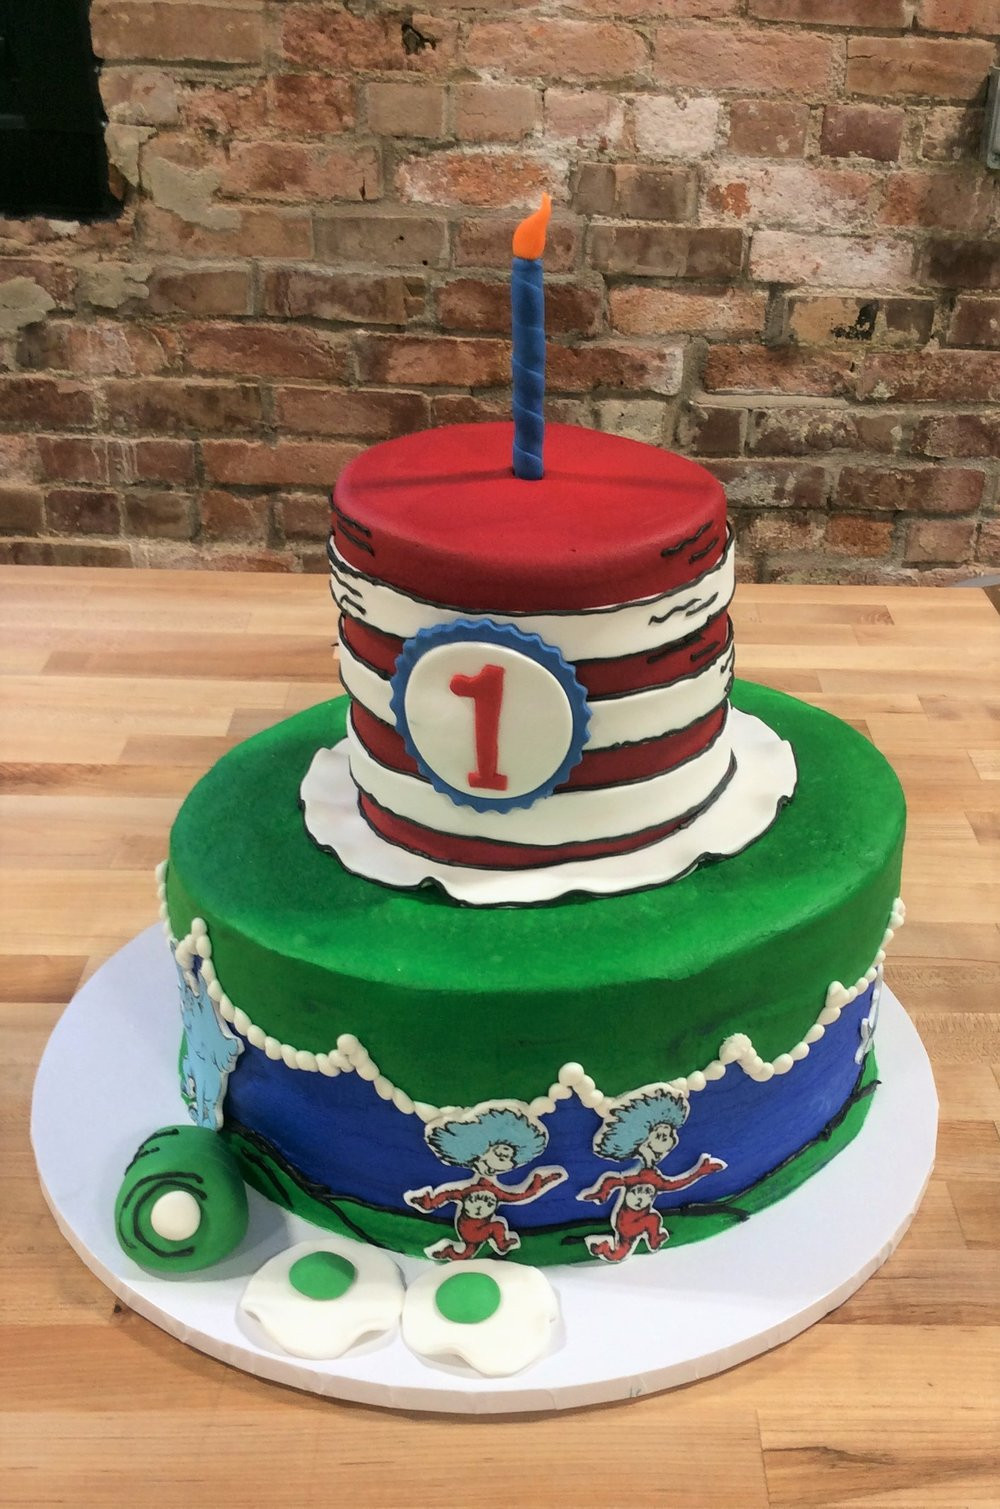 Wedding Cakes Peoria Il  Dr Seuss Party Cake — Trefzger s Bakery